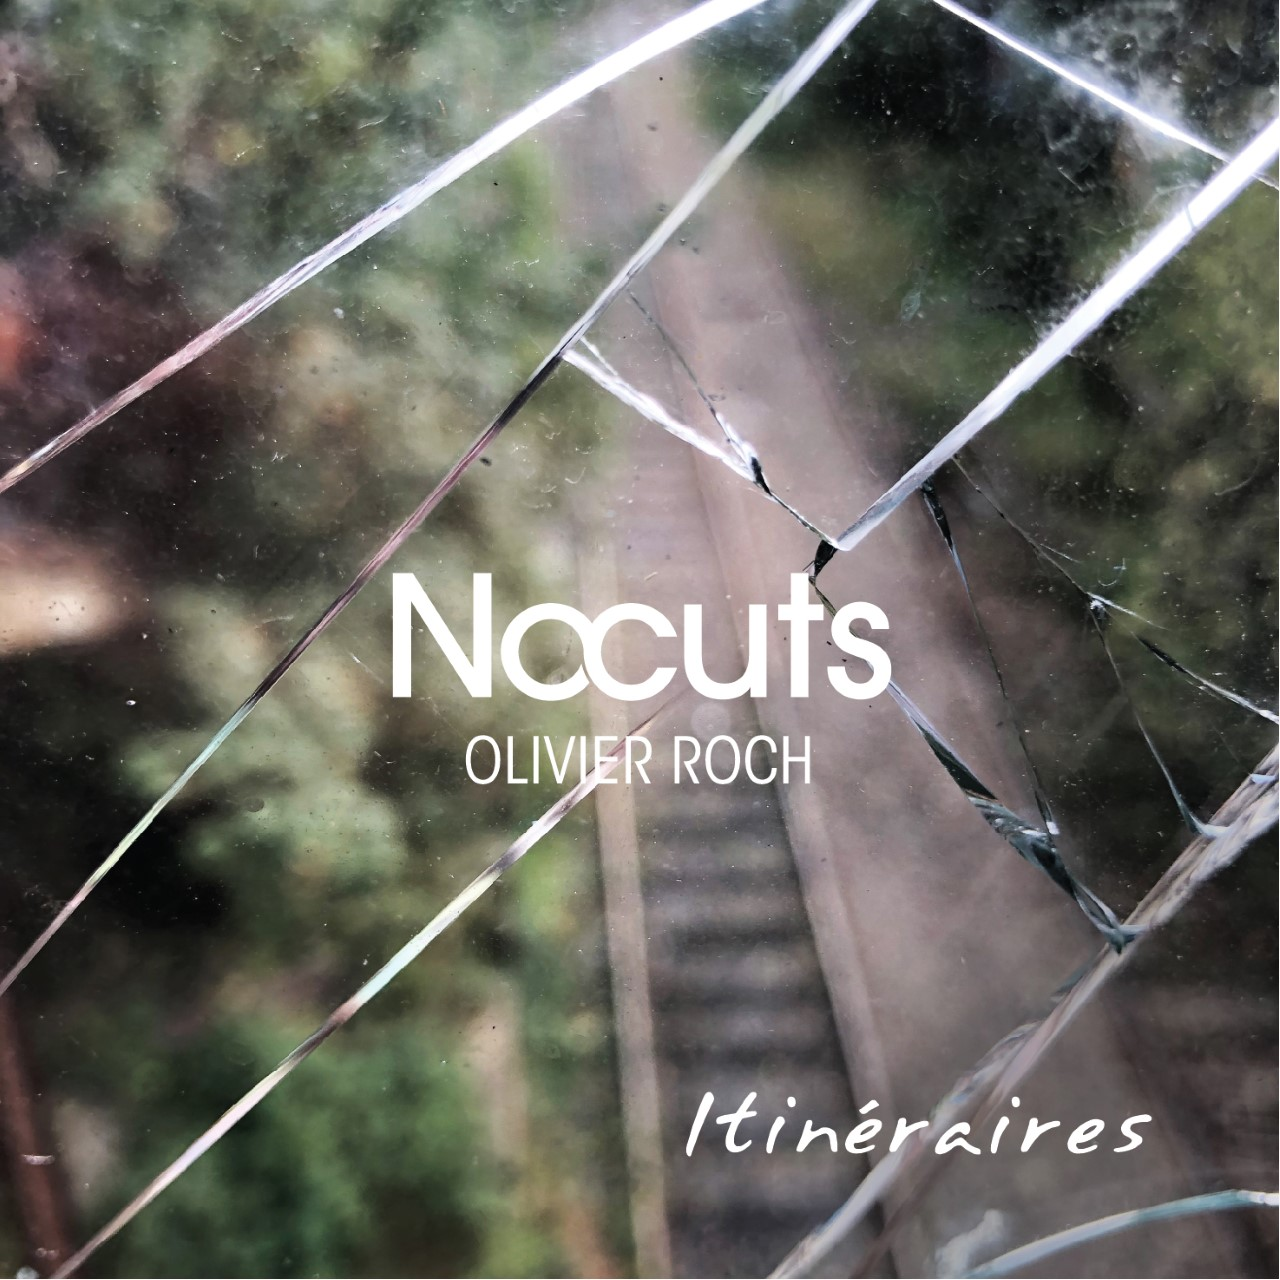 Nocuts Album